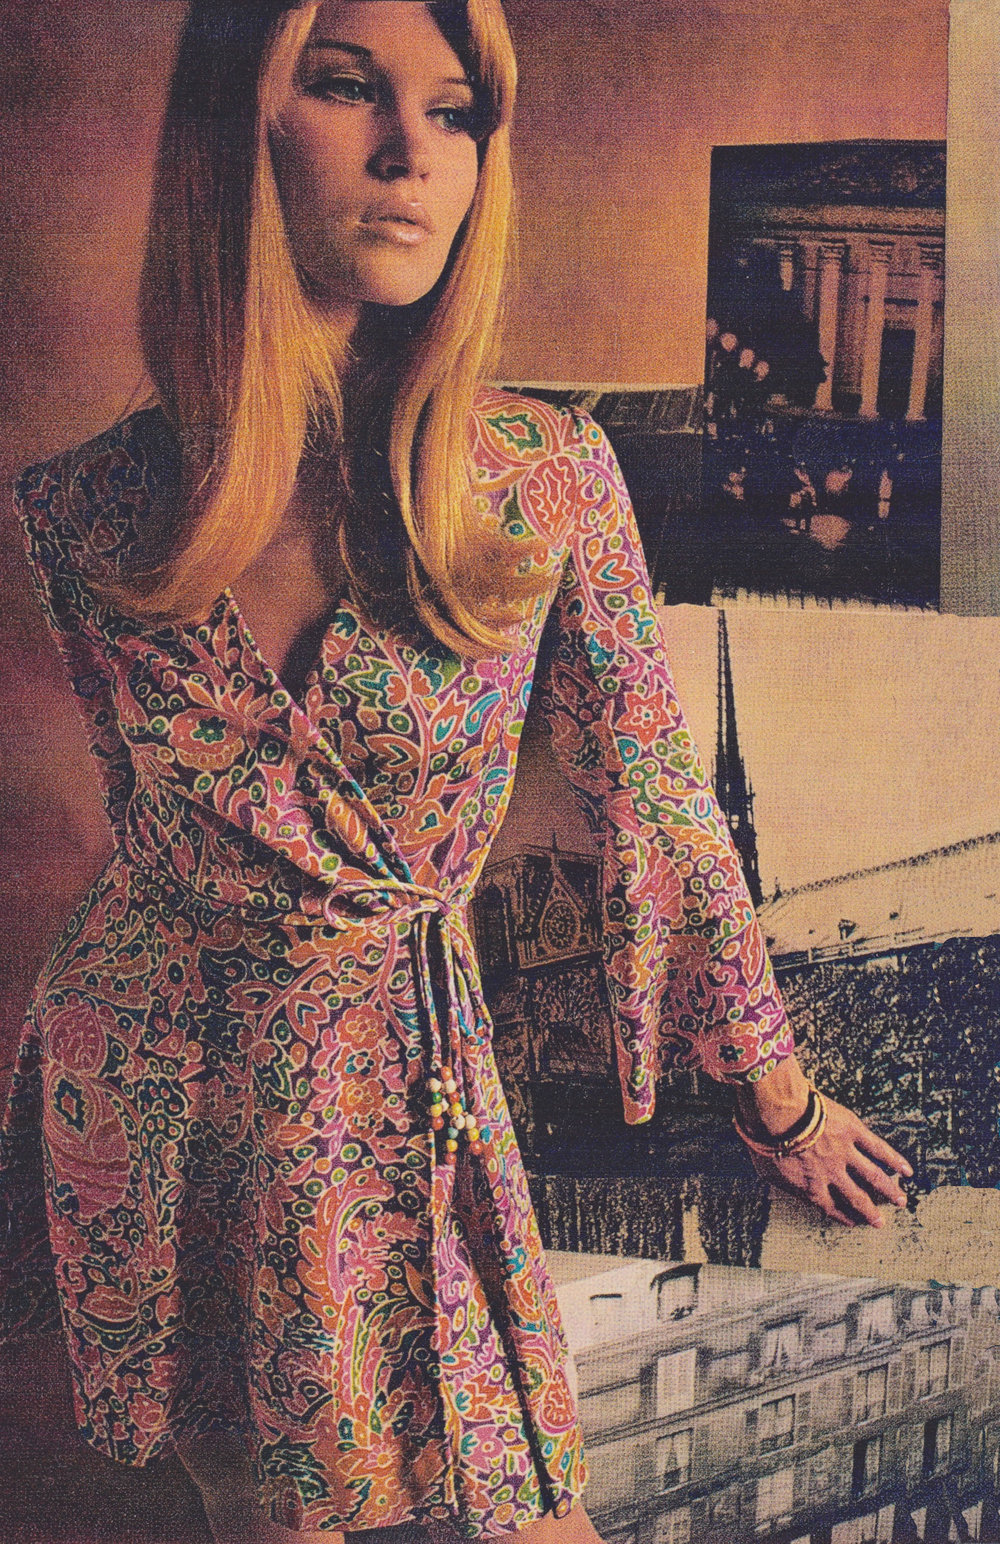 A wrap-dress designed by Fonssagrives-Tiel in 1967 and licensed to Joan Arkin, a NYC dress company. Redbook, 1967.